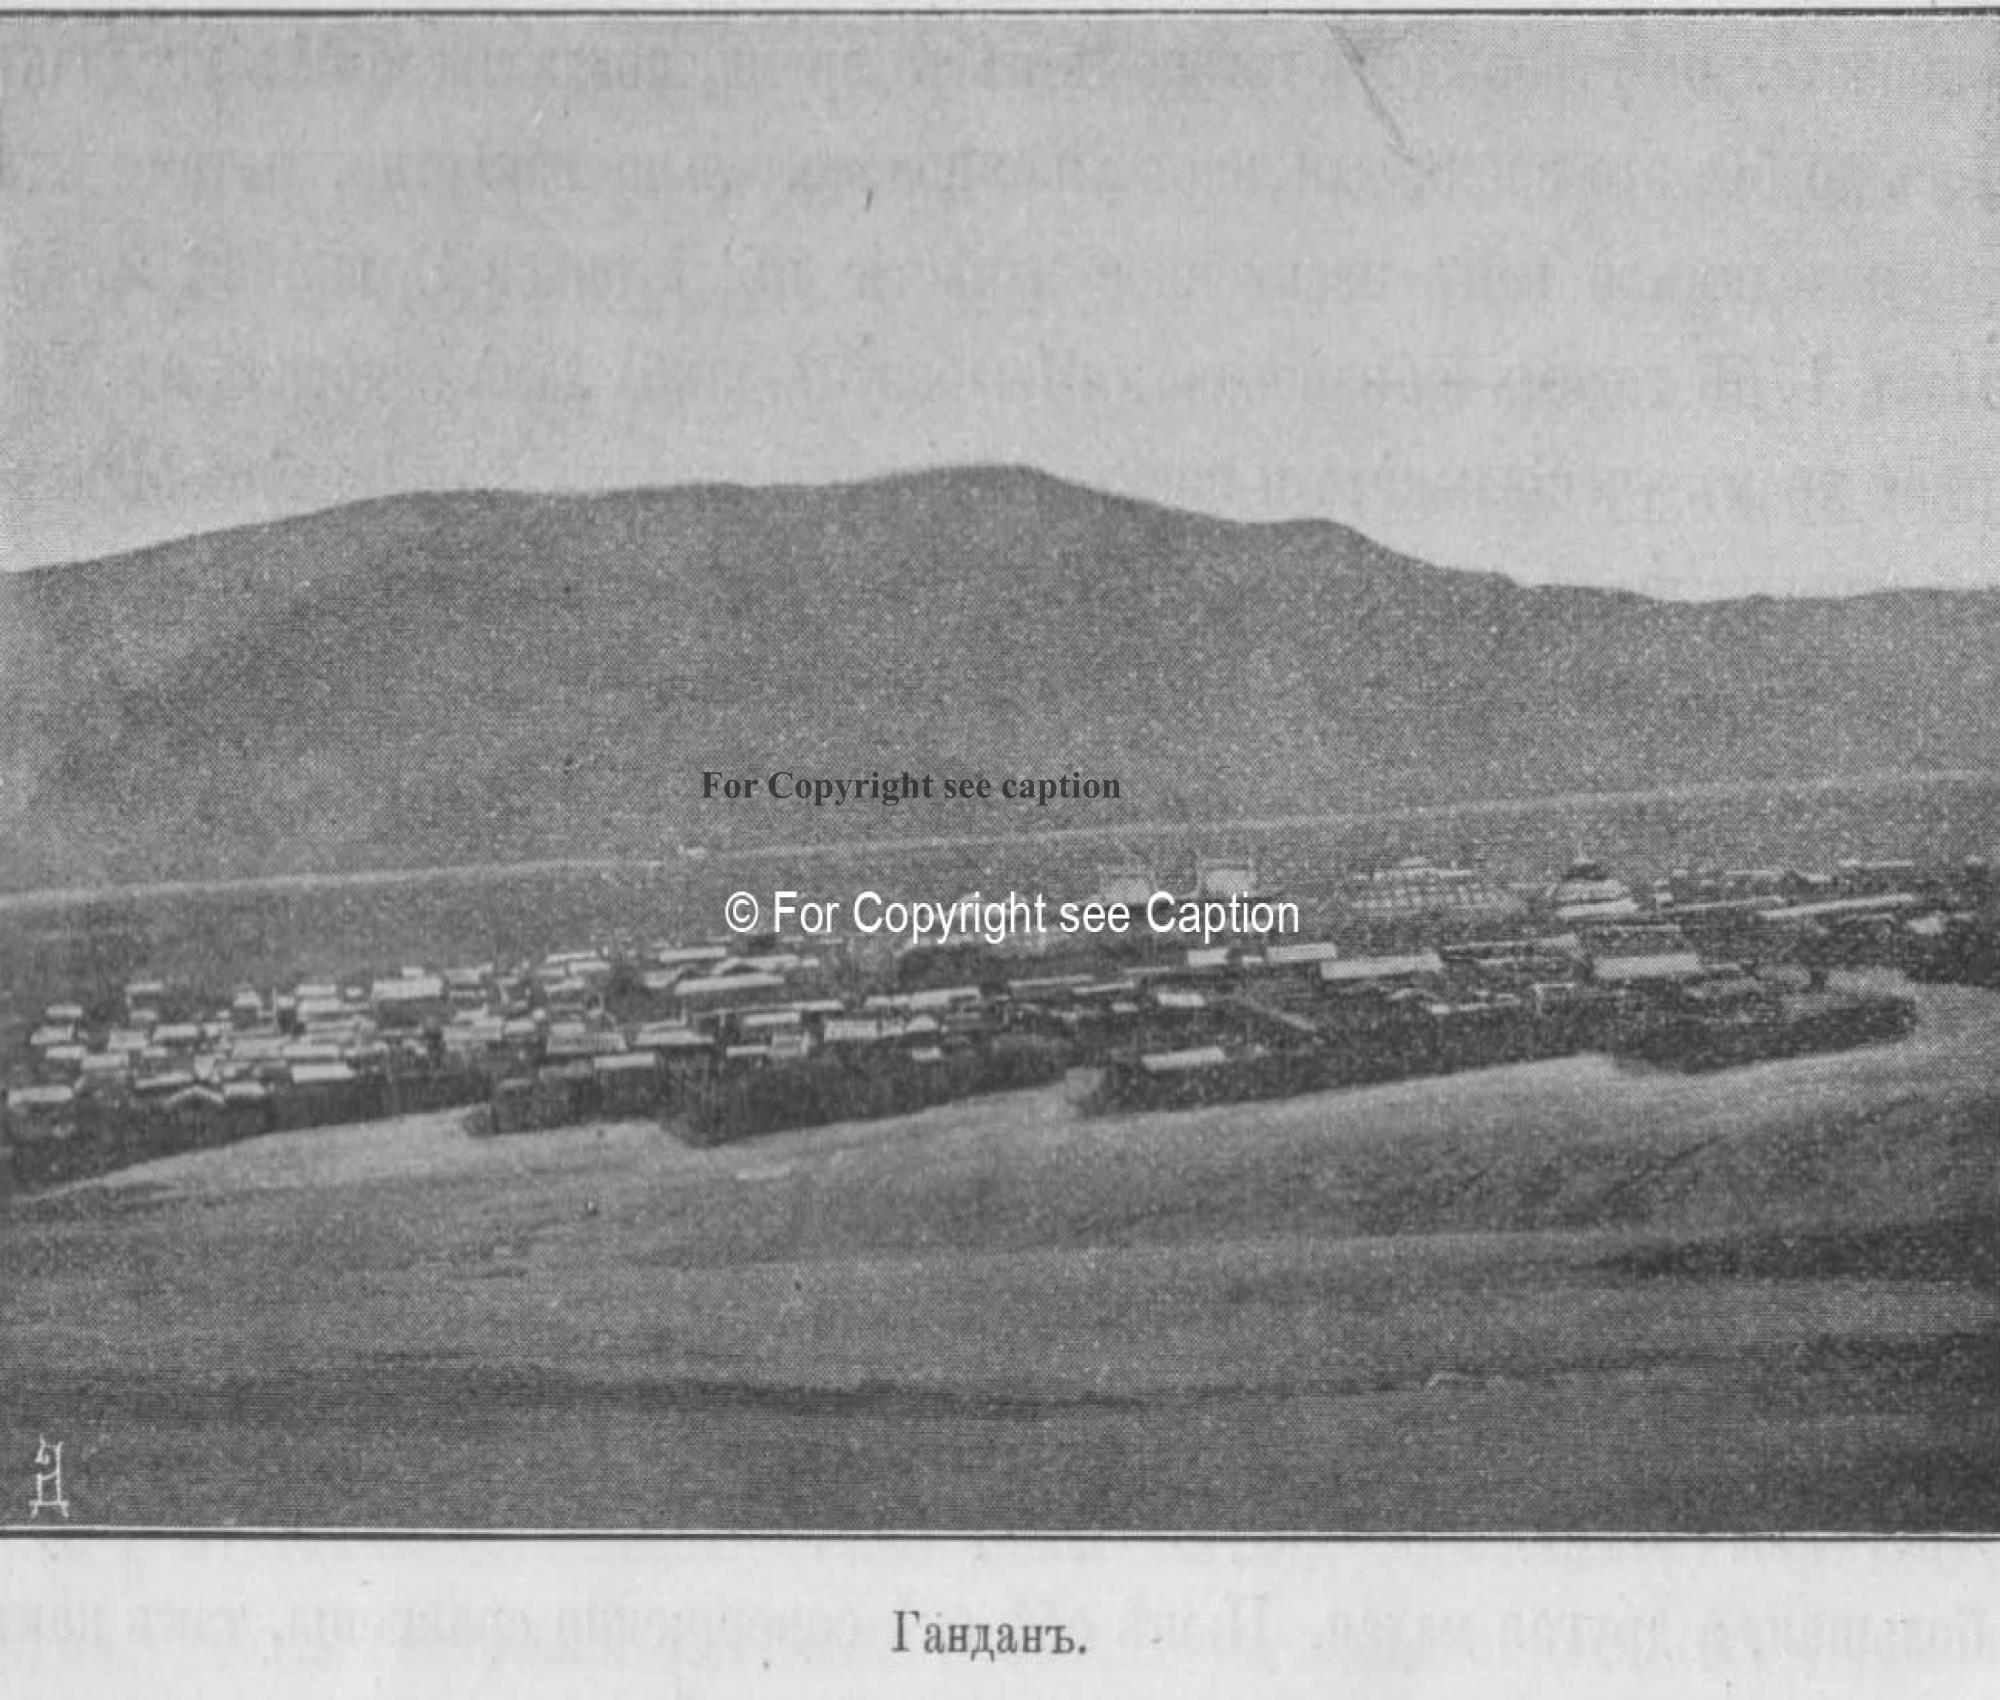 Gandan from the North-East. Pozdneev, A. M., Mongolija i Mongoly. T. 1. Sankt-Peterburg 1896 (photo